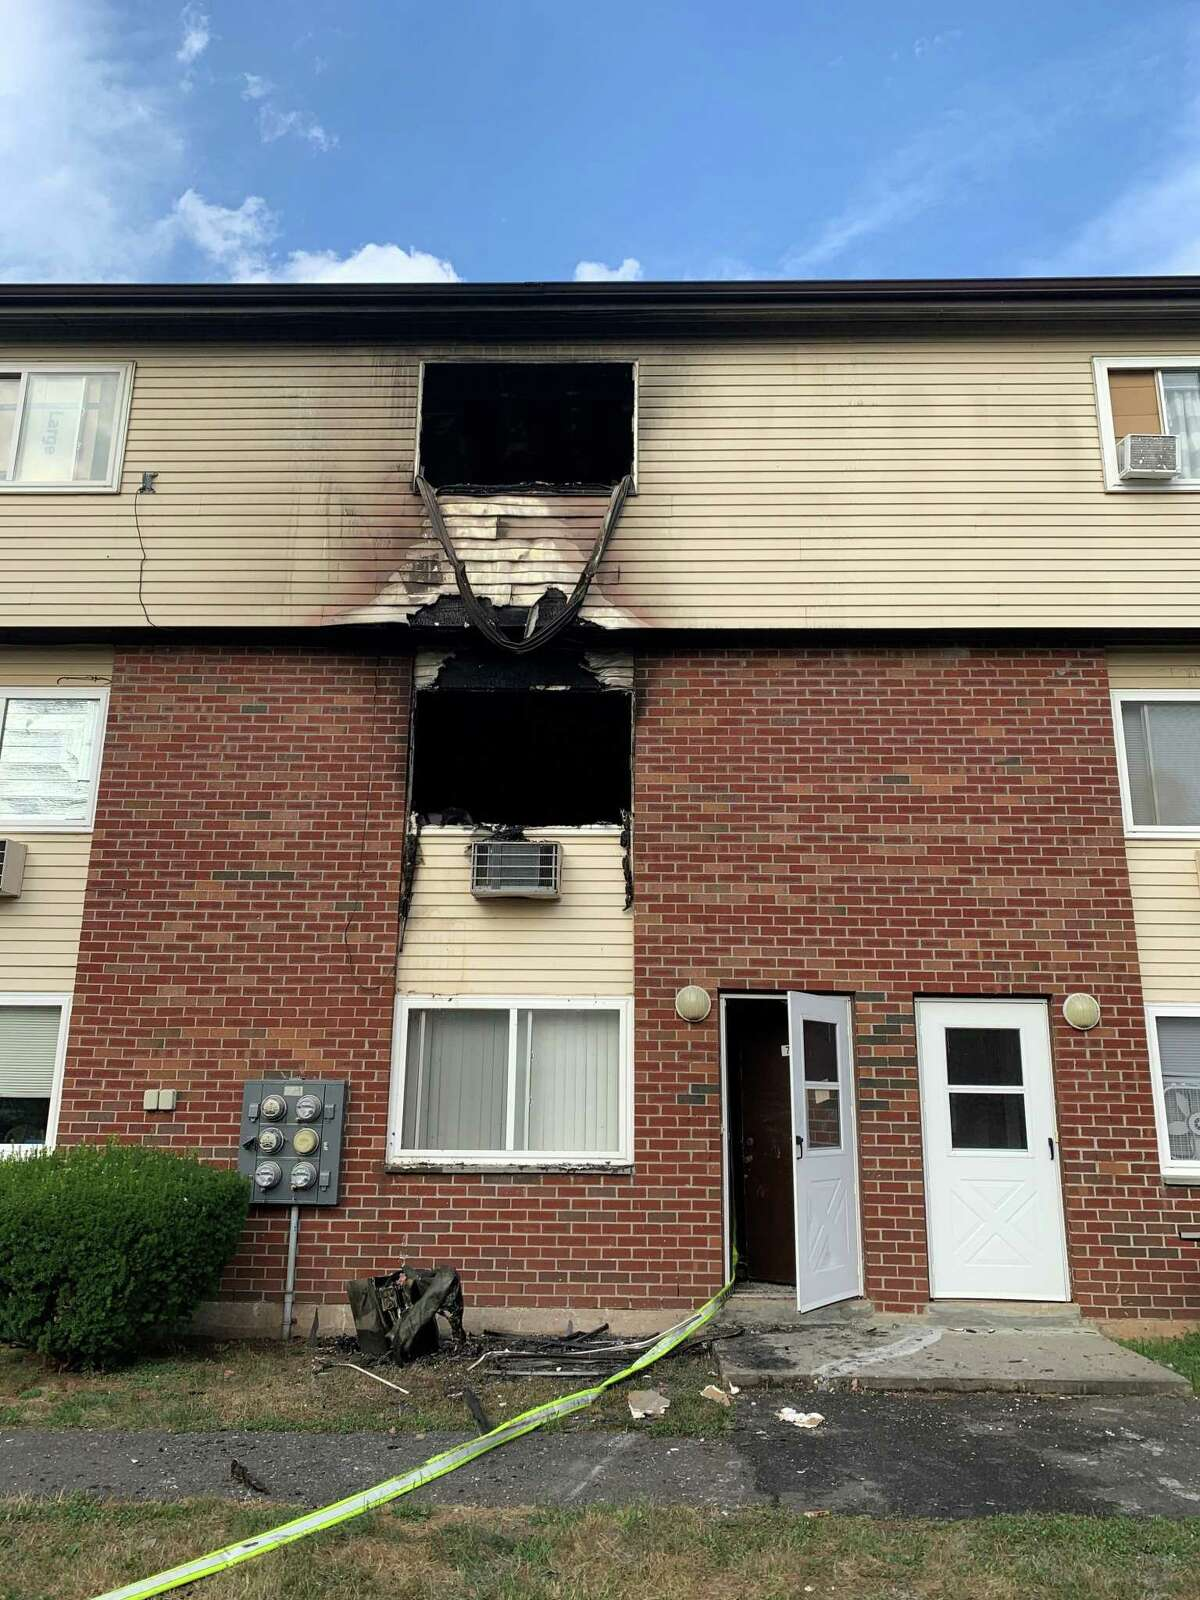 Firefighters extinguished a blaze at the Summer Hill Apartments in Middletown Friday.